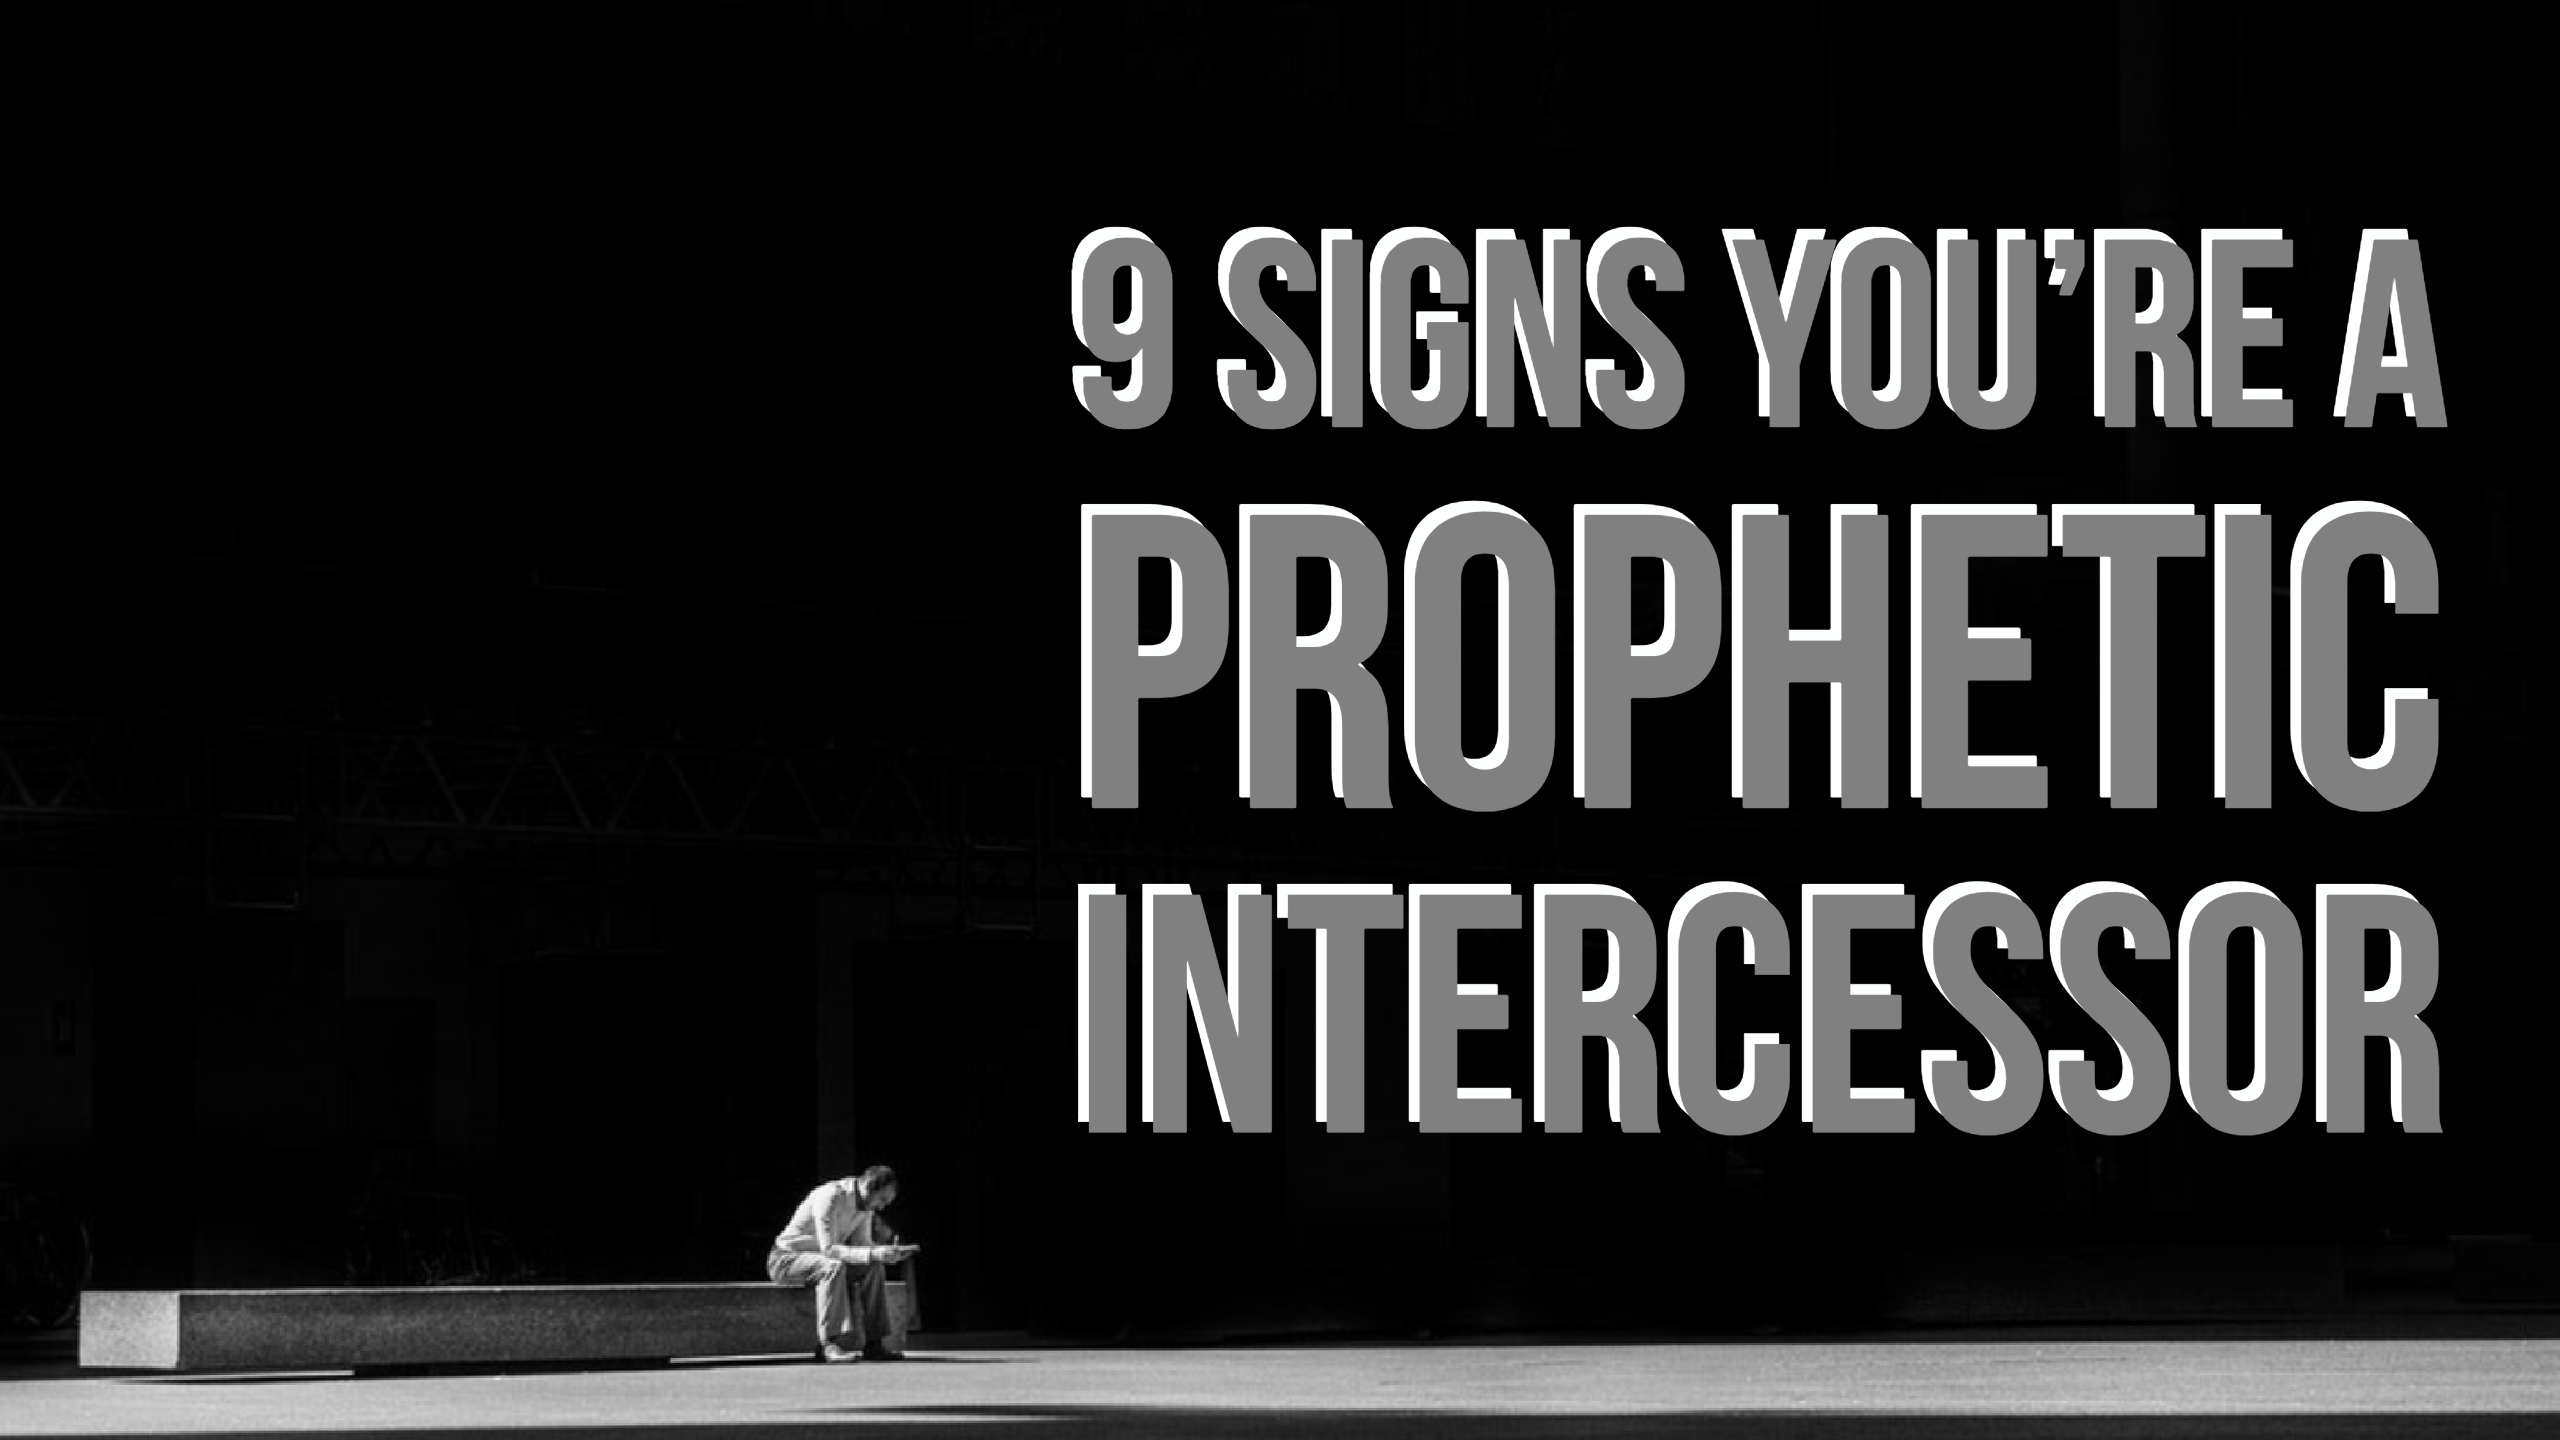 9 Signs You're a Prophetic Intercessor | Awakening Magazine